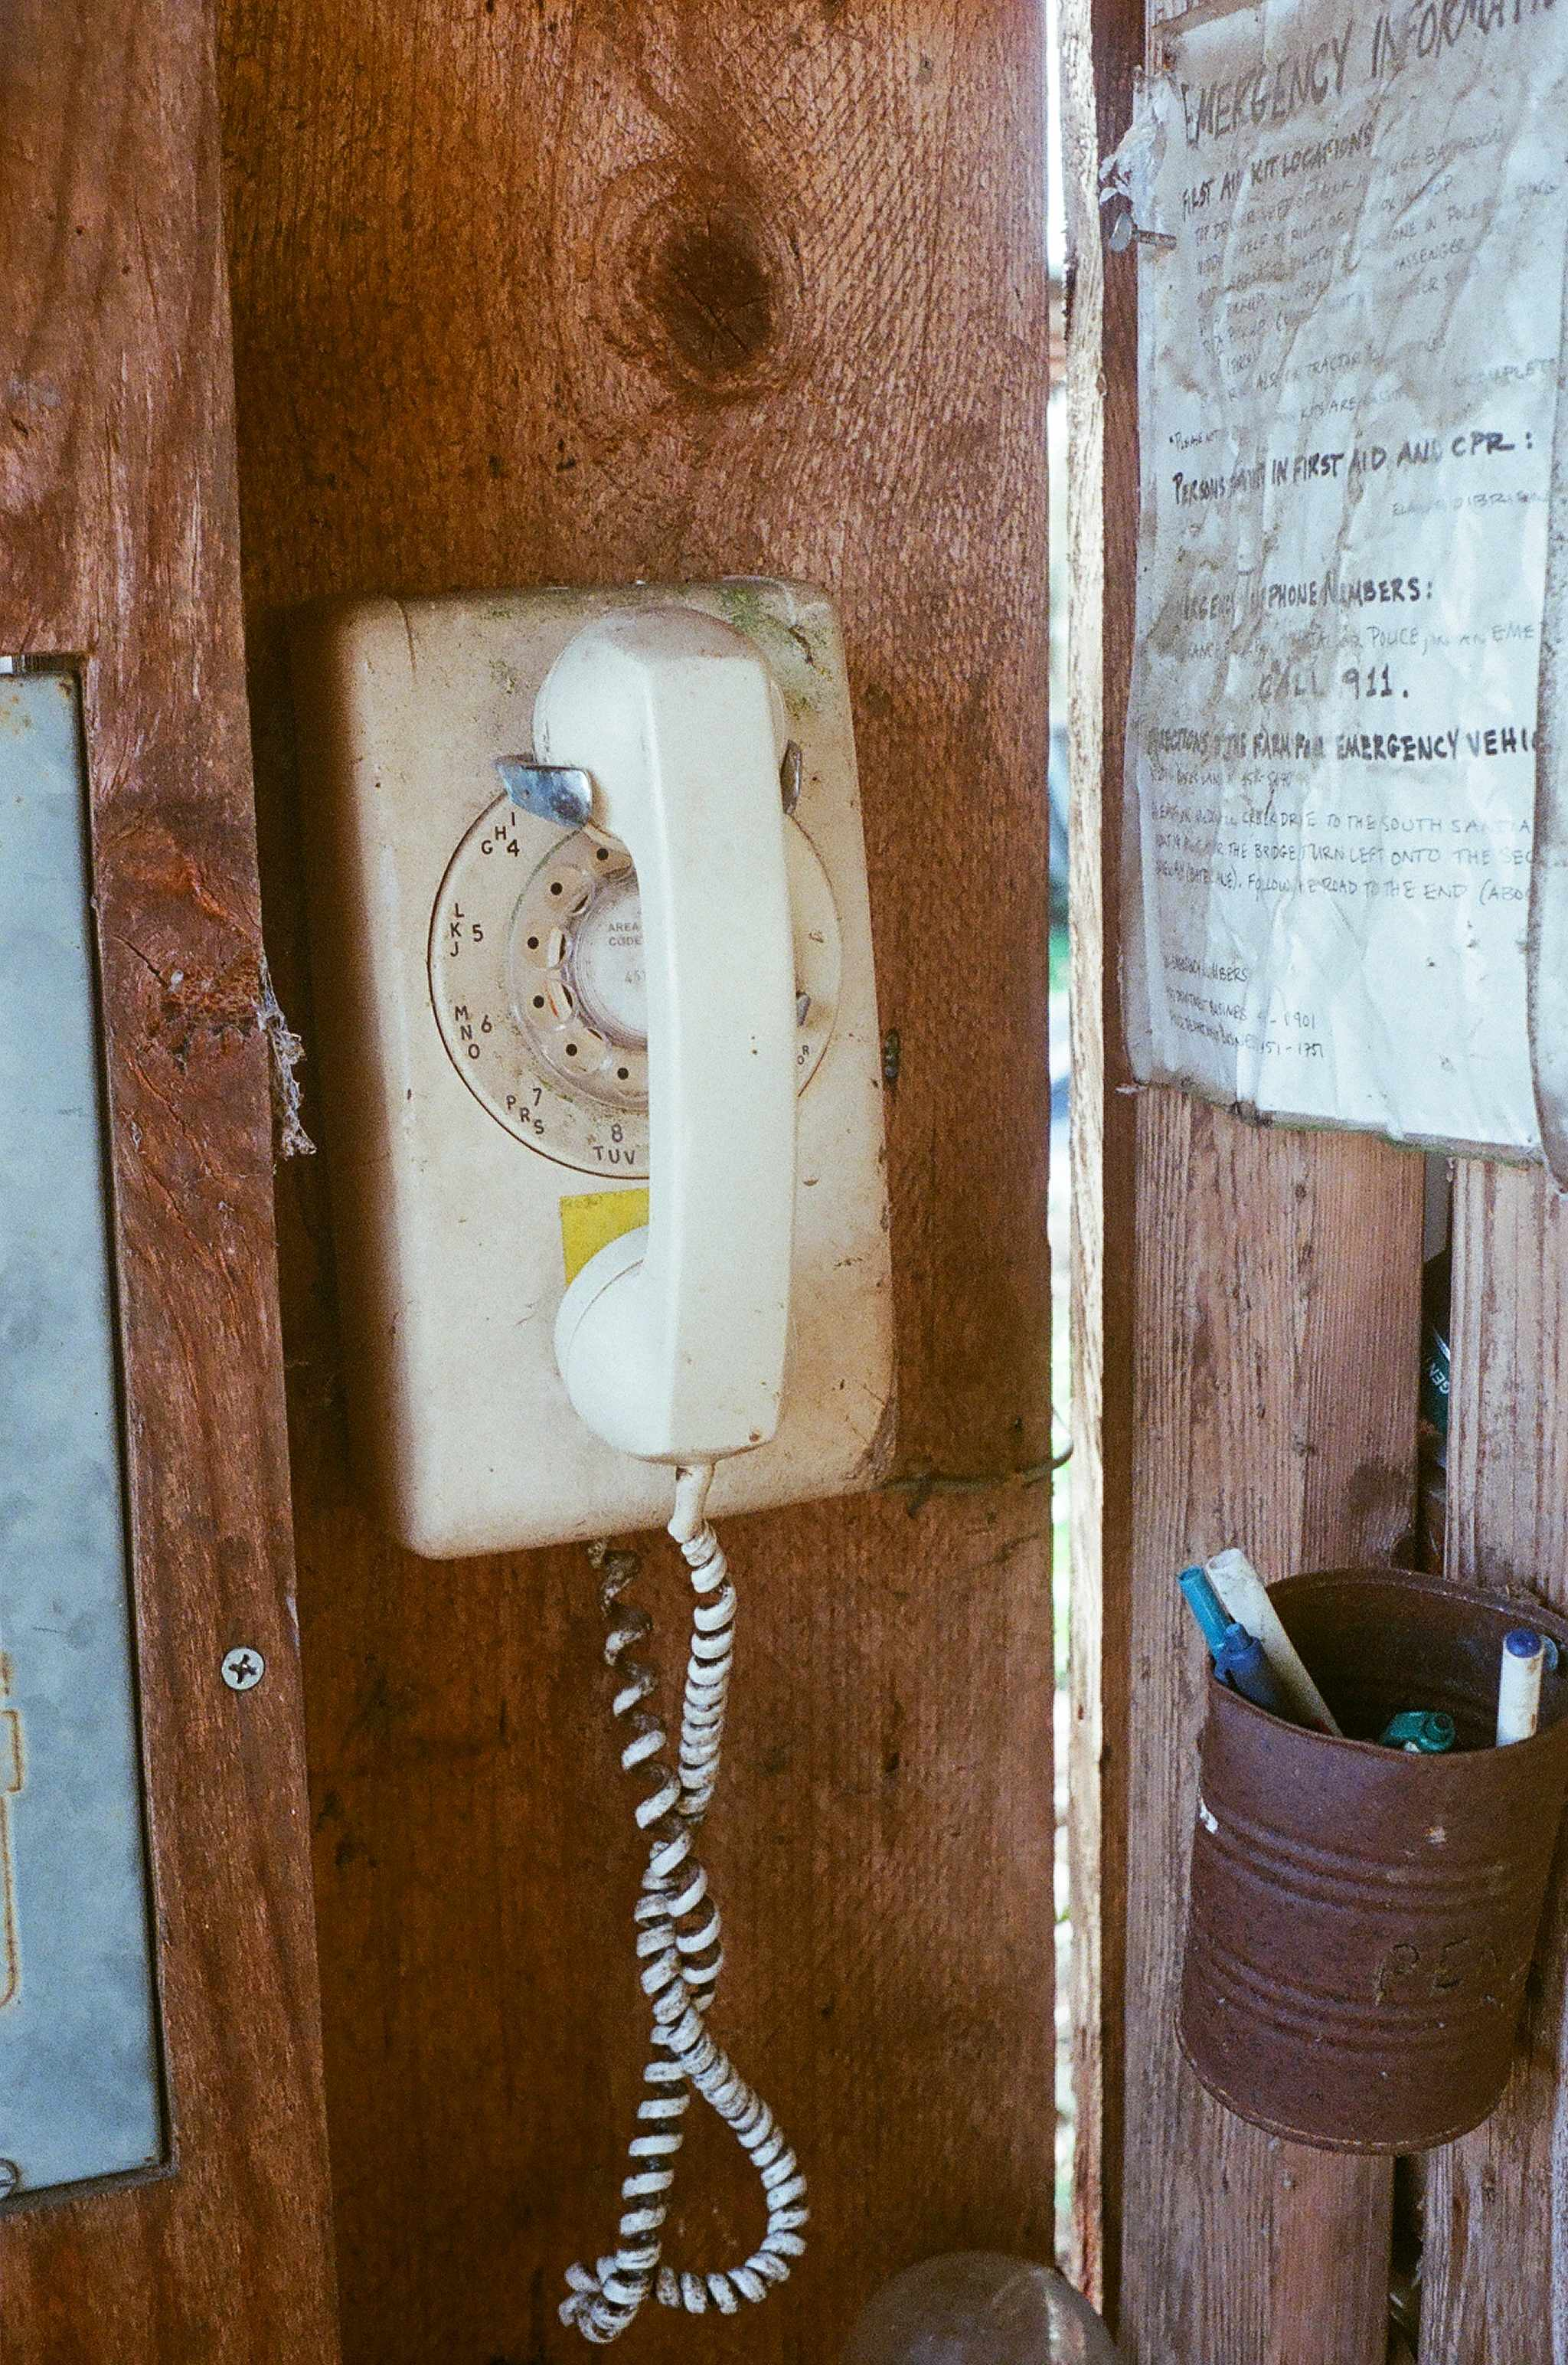 We believe that an important part of sustainability is to challenge obsolescence by using items until they are worn out. Many people regard rotary phones as outdated, but this one is still serving us after 30+ years of use.